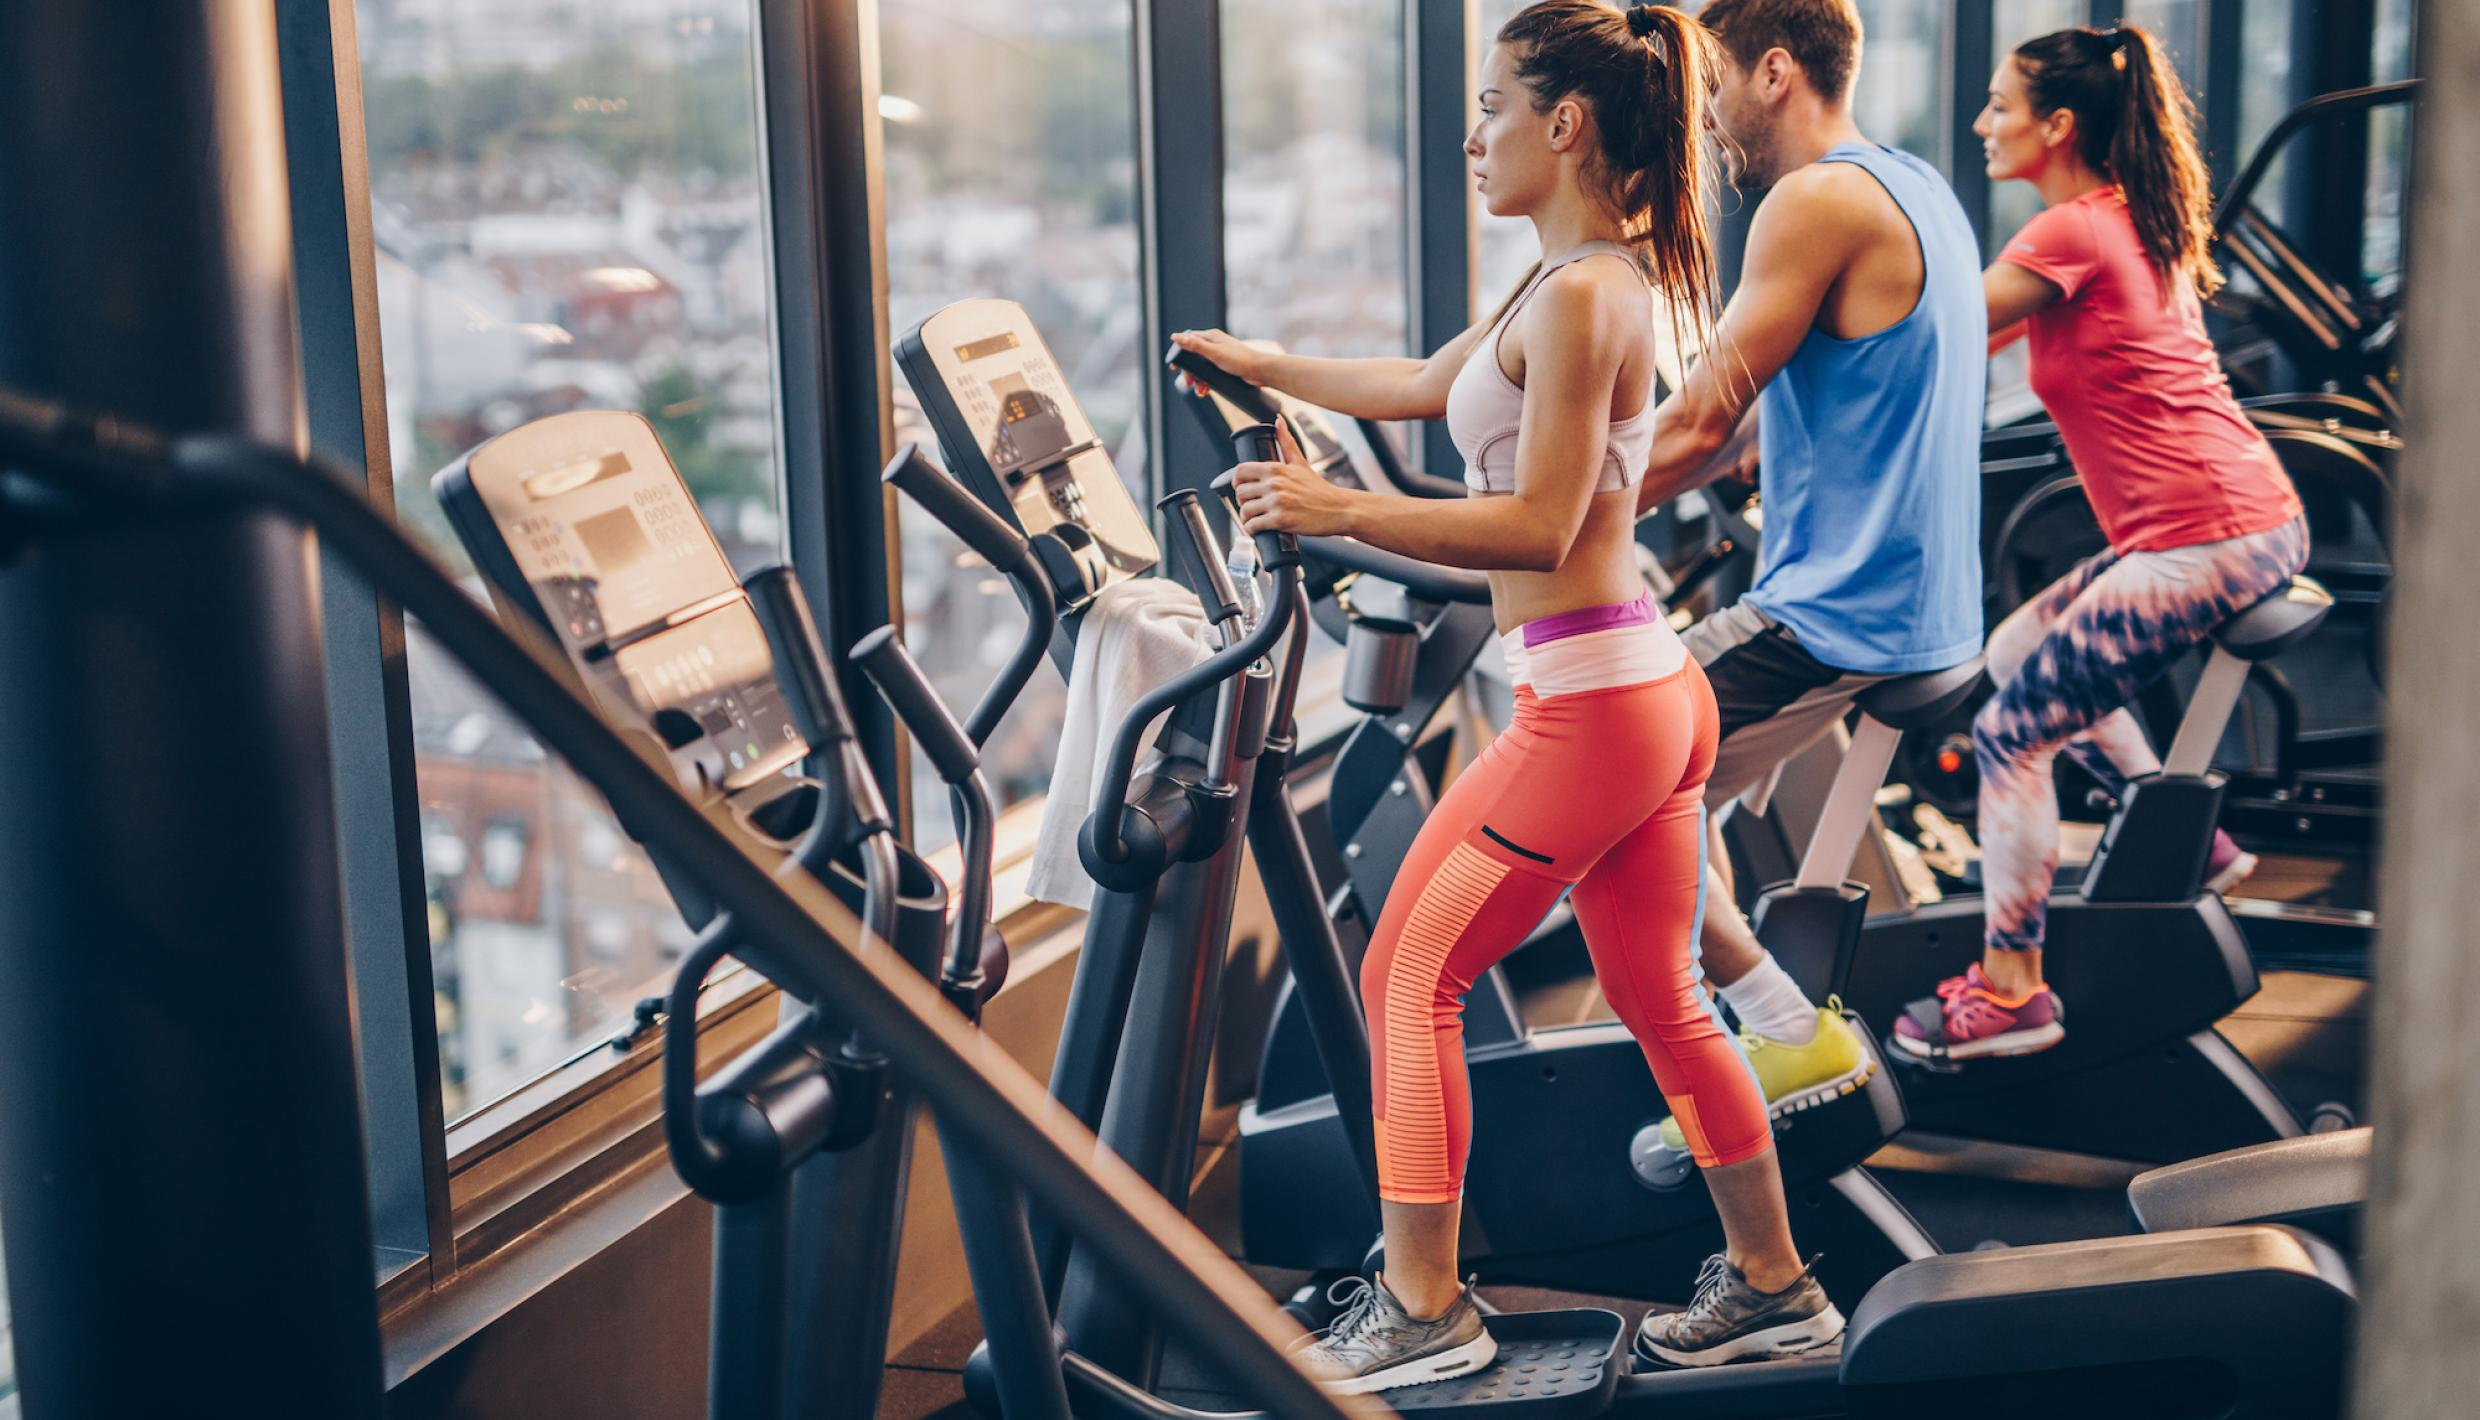 Elliptical Workout For Aerobic Exercise